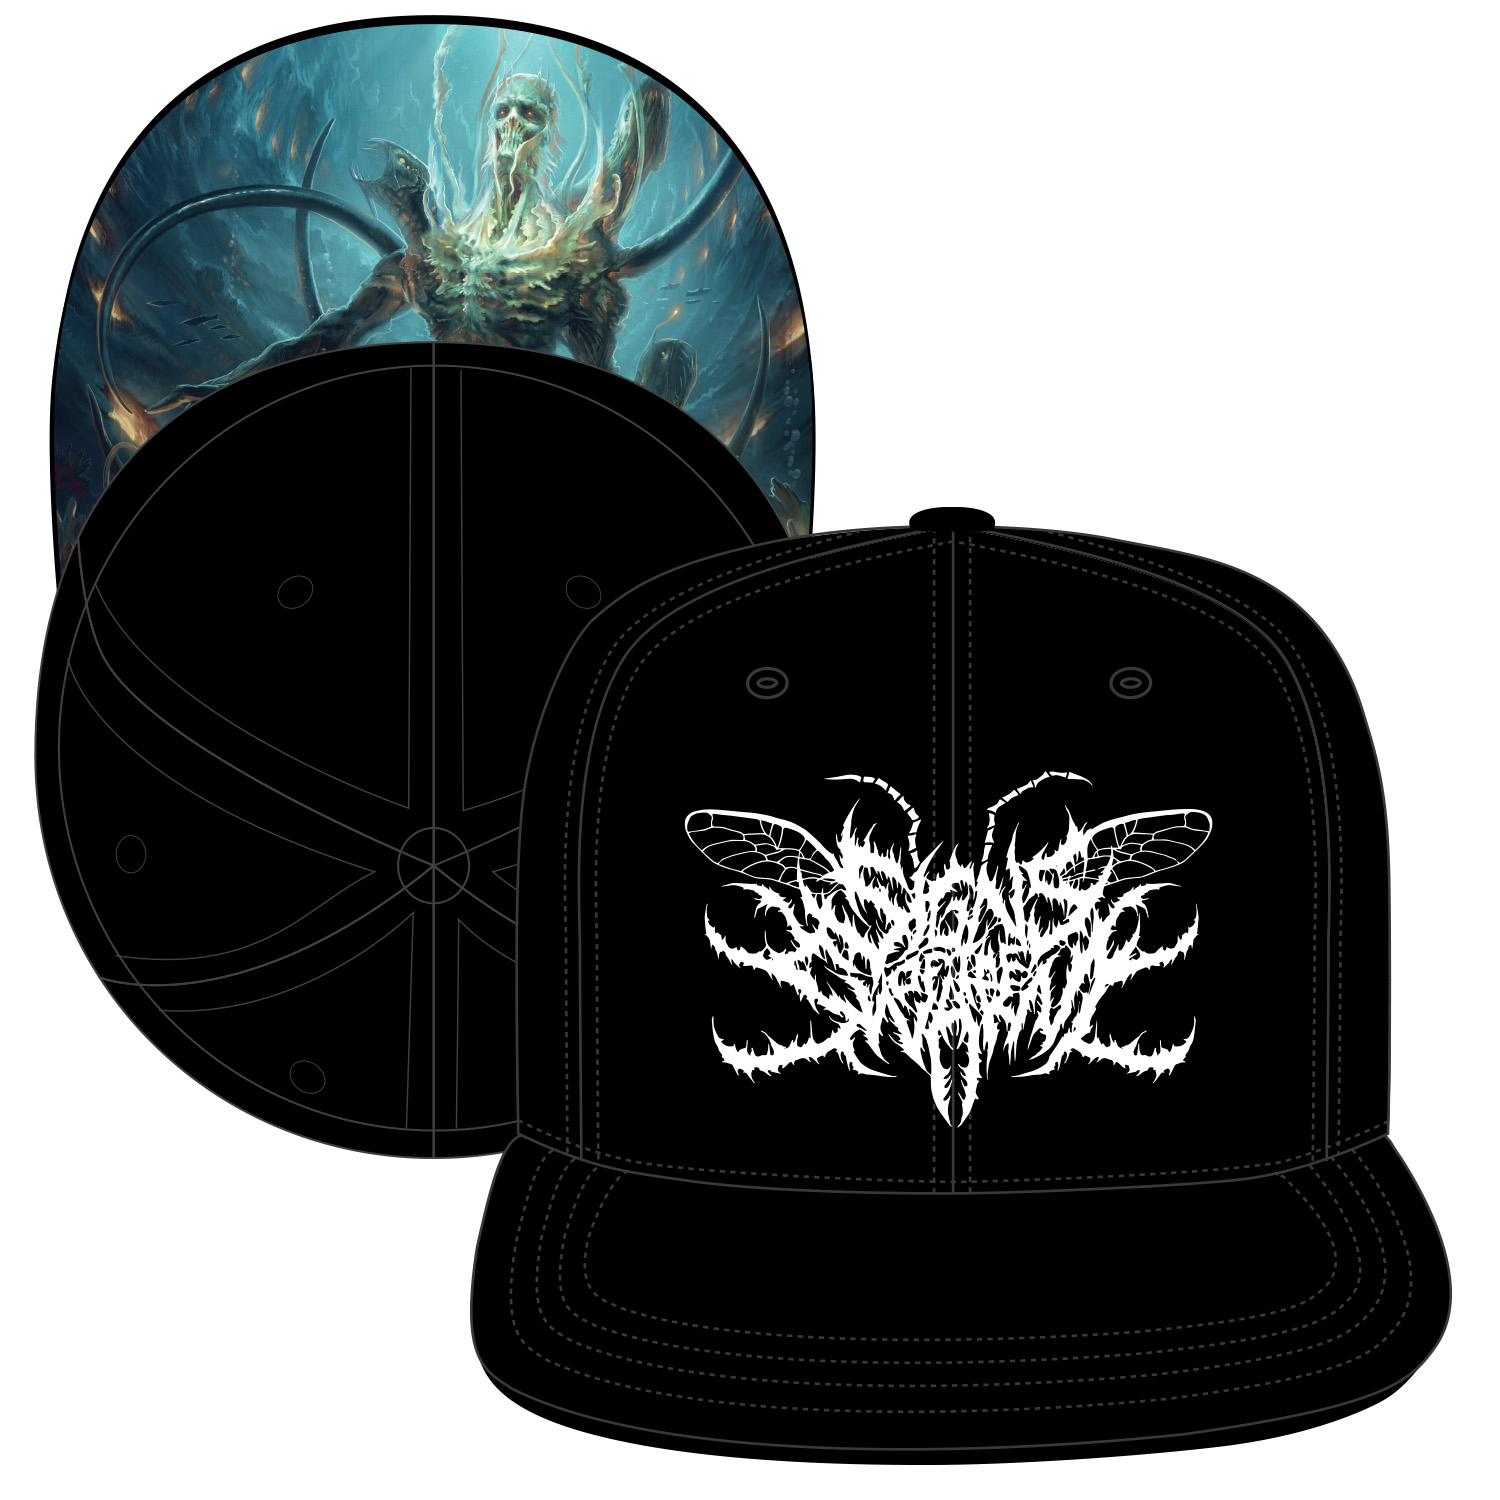 signs of the swarm quotlogo coverquot hat unique leader records